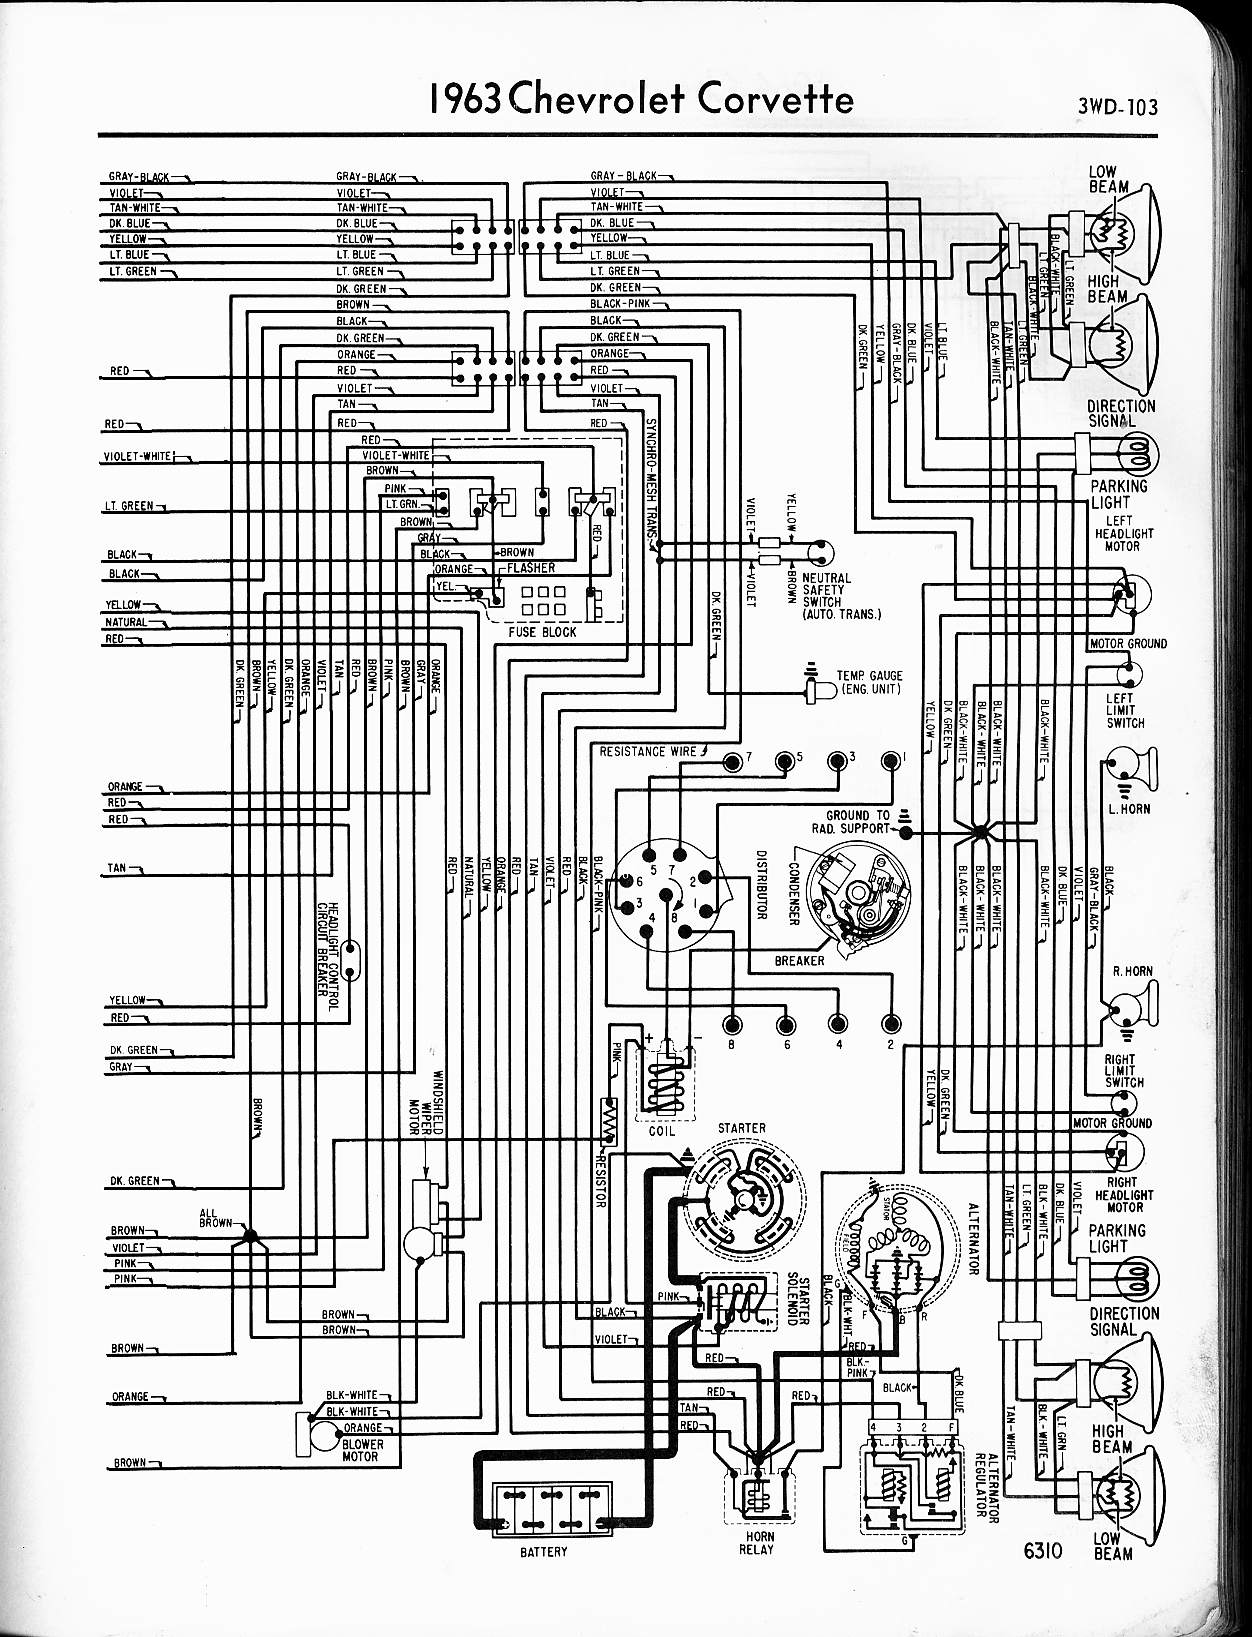 1966 Gmc Truck Wiring Diagram Library 1961 Chevrolet 1963 Will Be A Thing U2022 Rh Exploreandmore Co Uk 1973